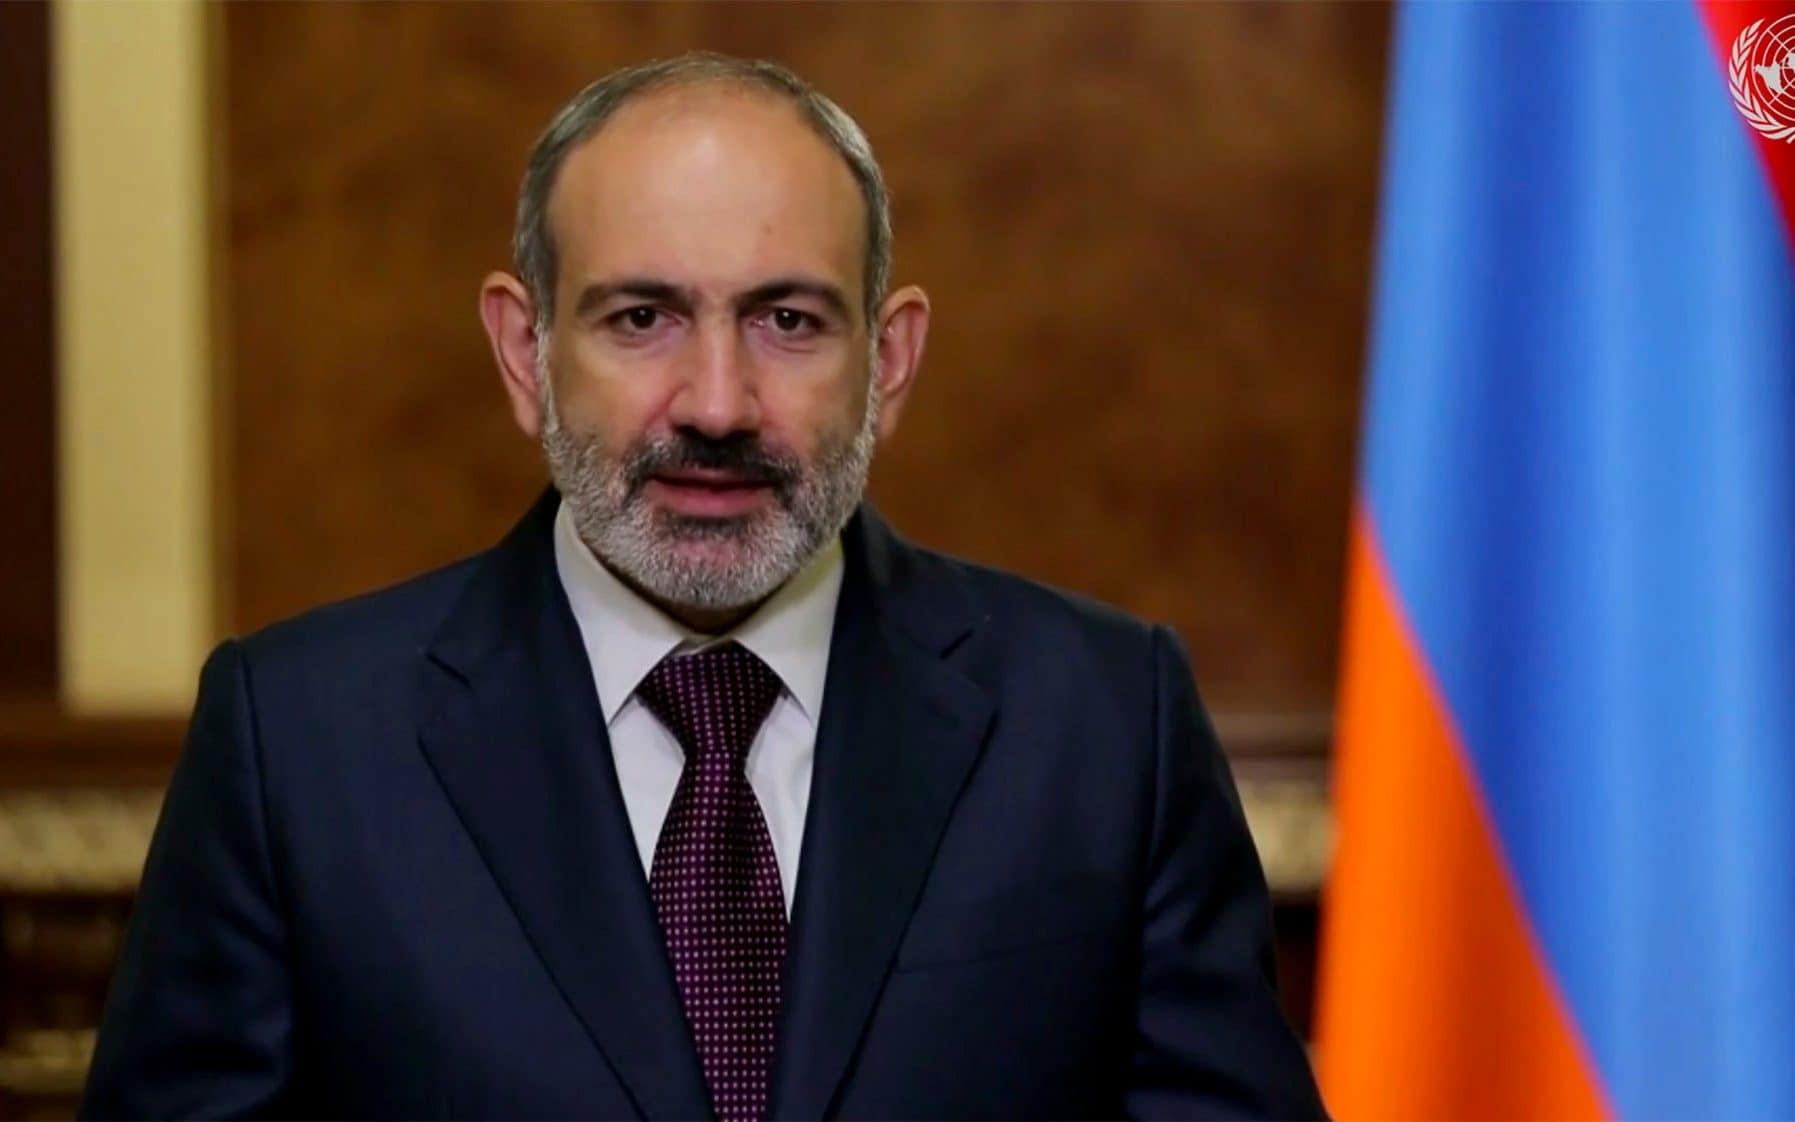 Armenia's prime minister calls for Russian peacekeepers to halt war in Nagorno Karabakh